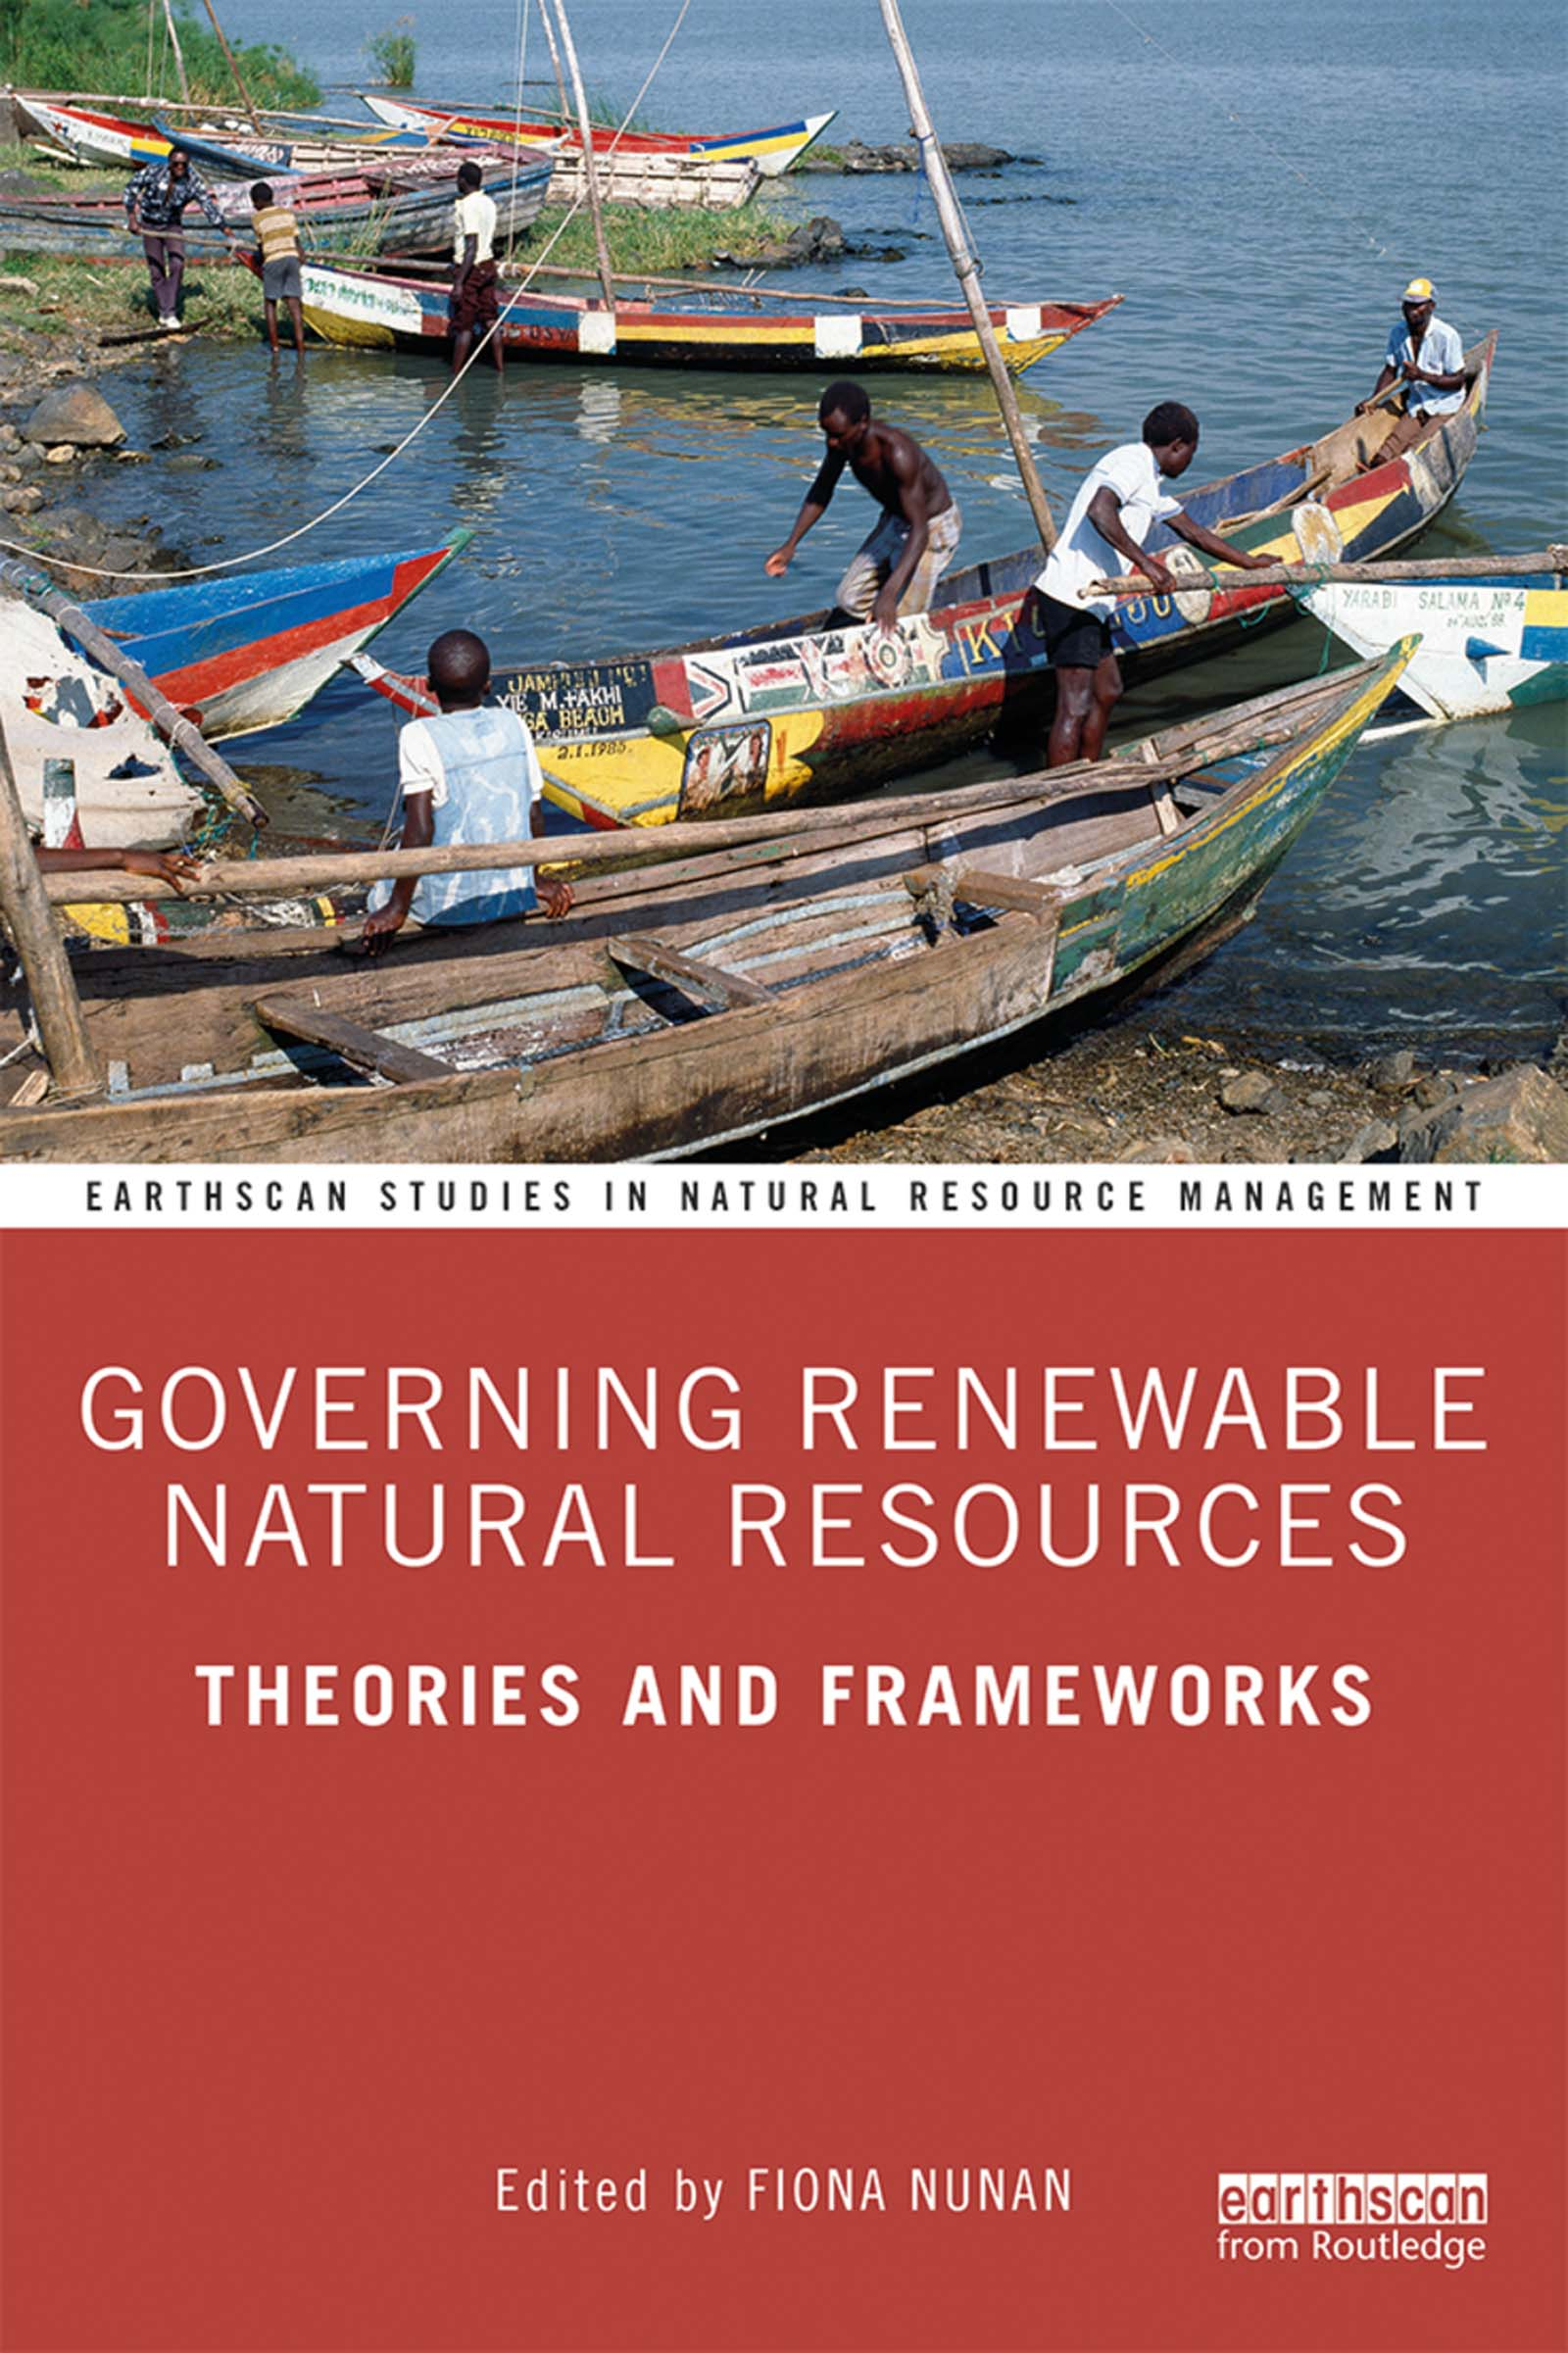 Governing Renewable Natural Resources: Theories and Frameworks book cover